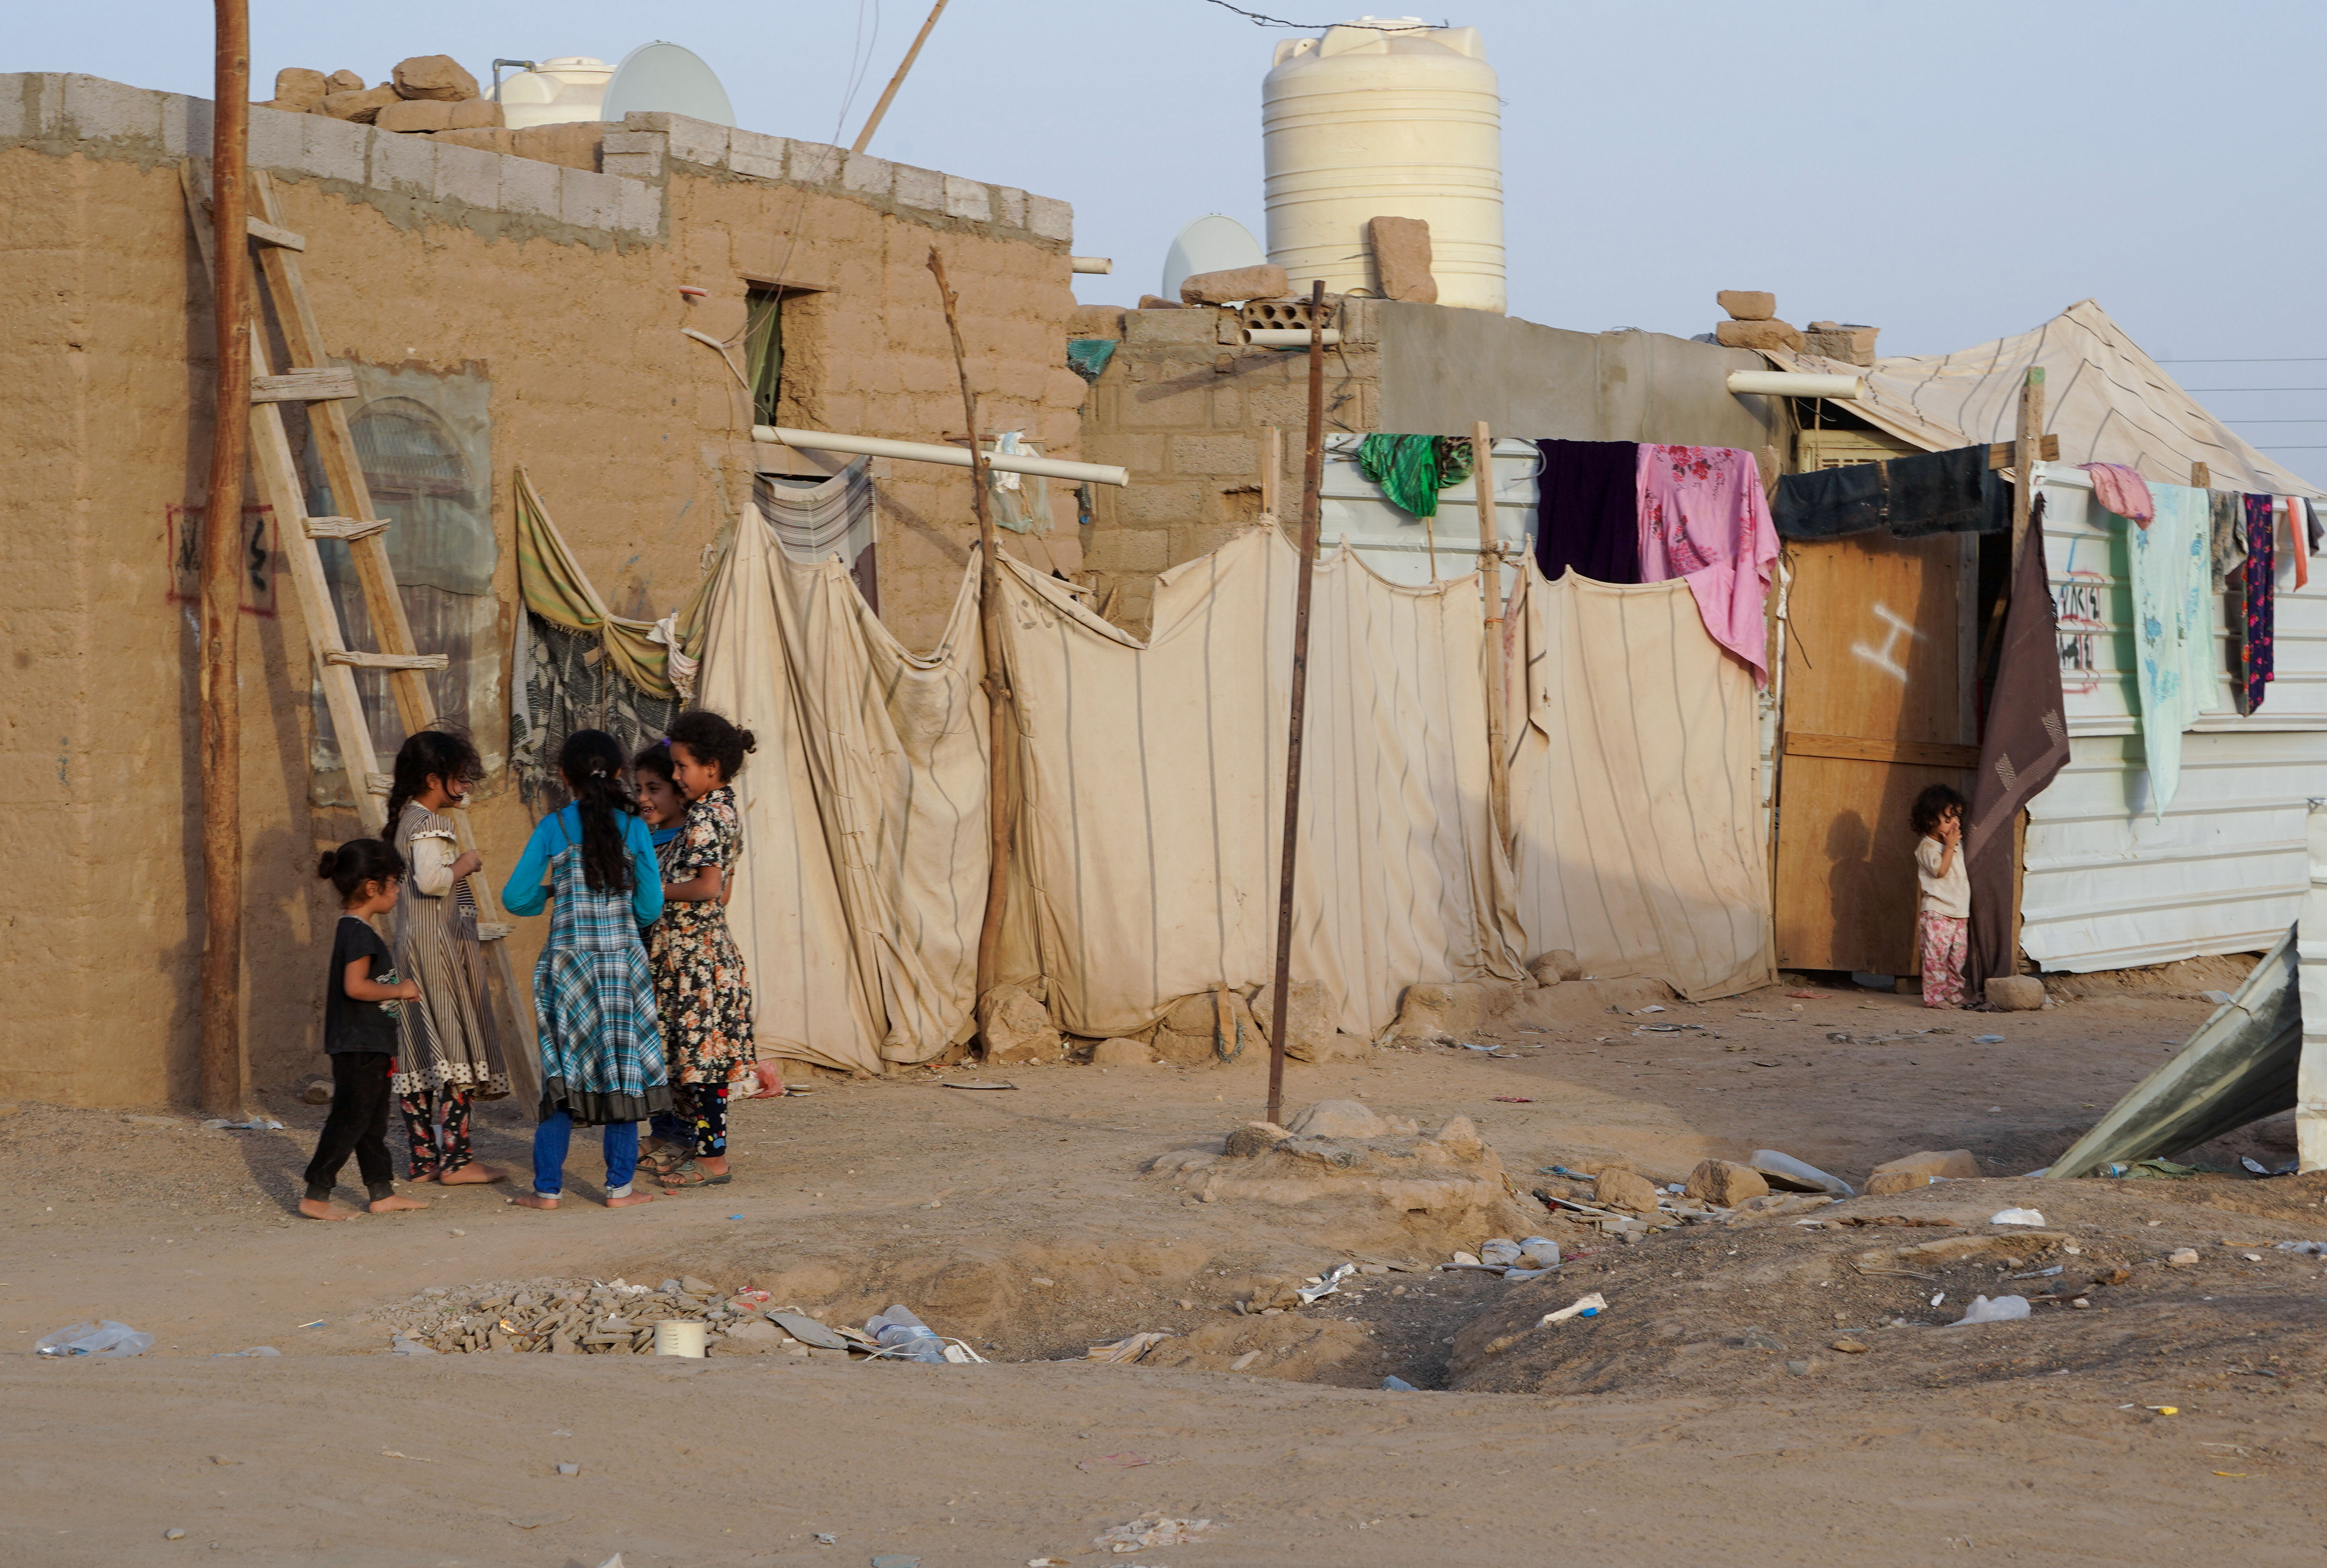 Girls play at a makeshift camp for internally displaced people (IDPs) in the oil-producing Marib province, Yemen May 10, 2021. REUTERS/Nabeel al-Awzari